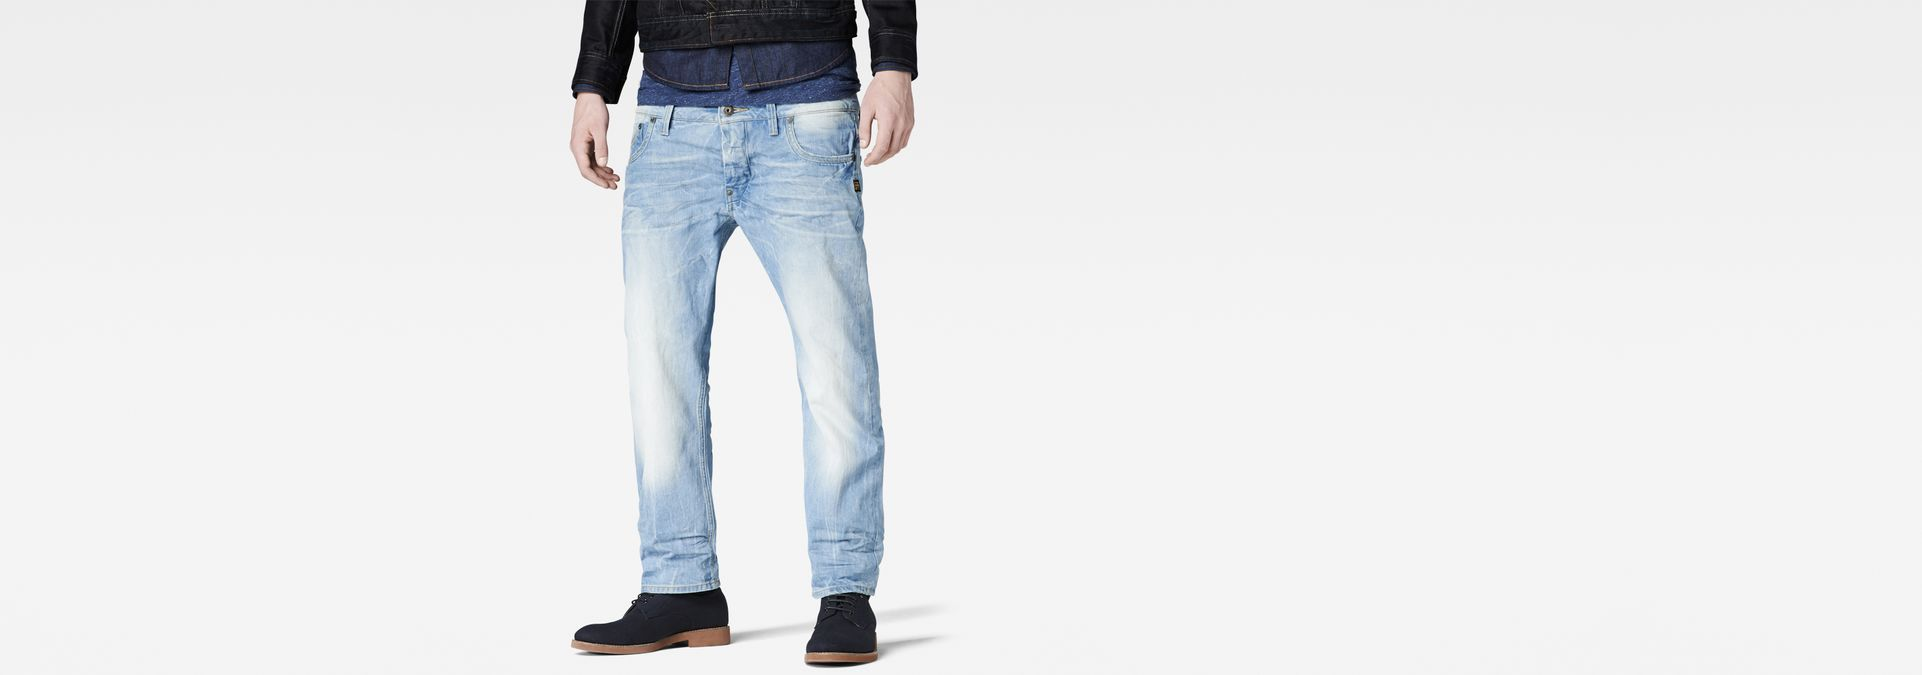 attacc low straight jeans lt aged men sale g star raw. Black Bedroom Furniture Sets. Home Design Ideas